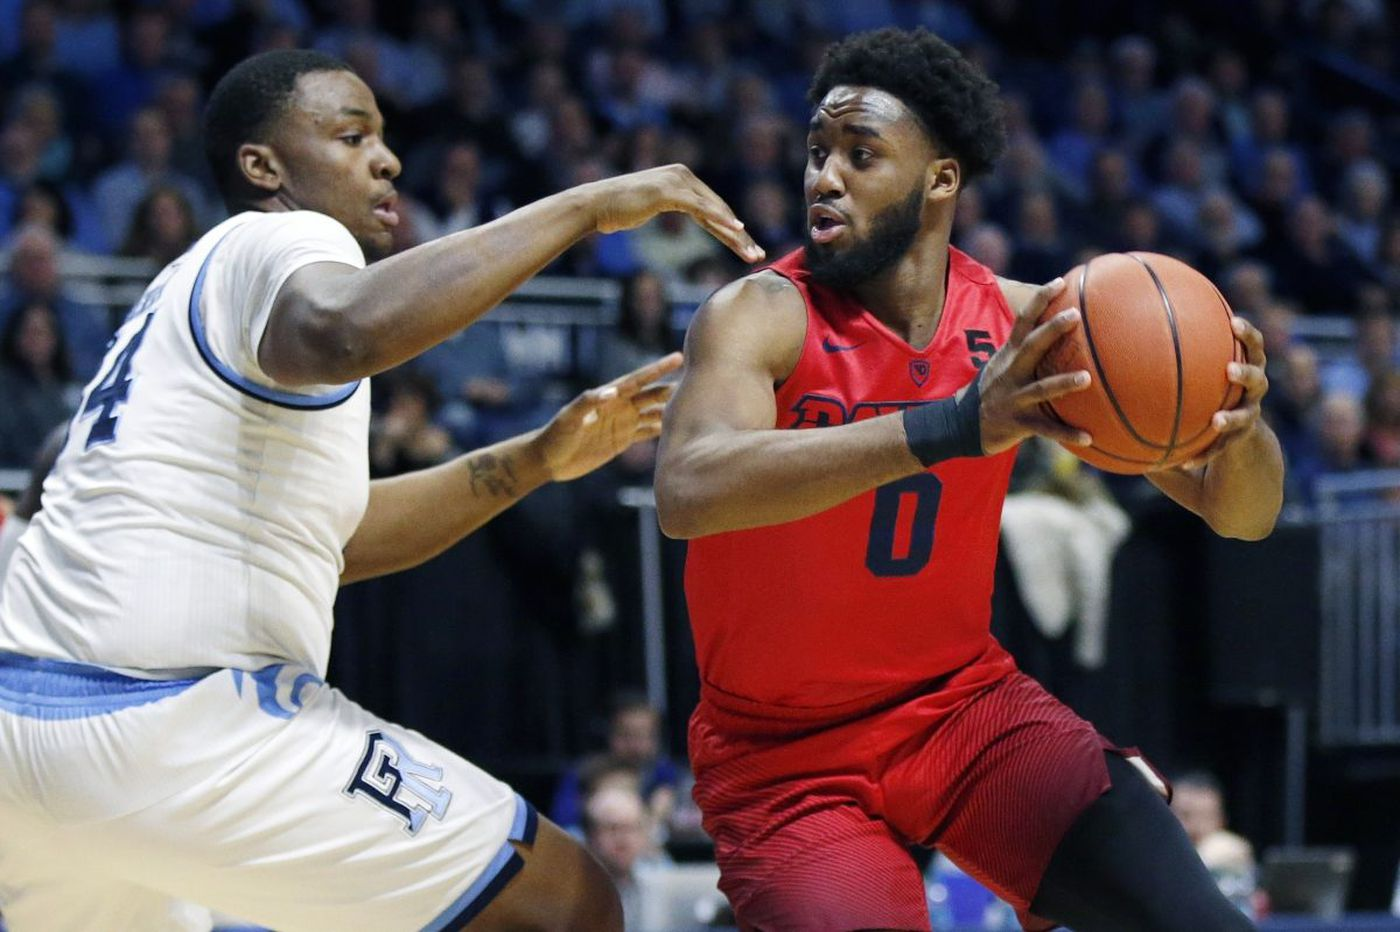 La Salle-Dayton, Temple-UConn, Villanova-Seton Hall previews